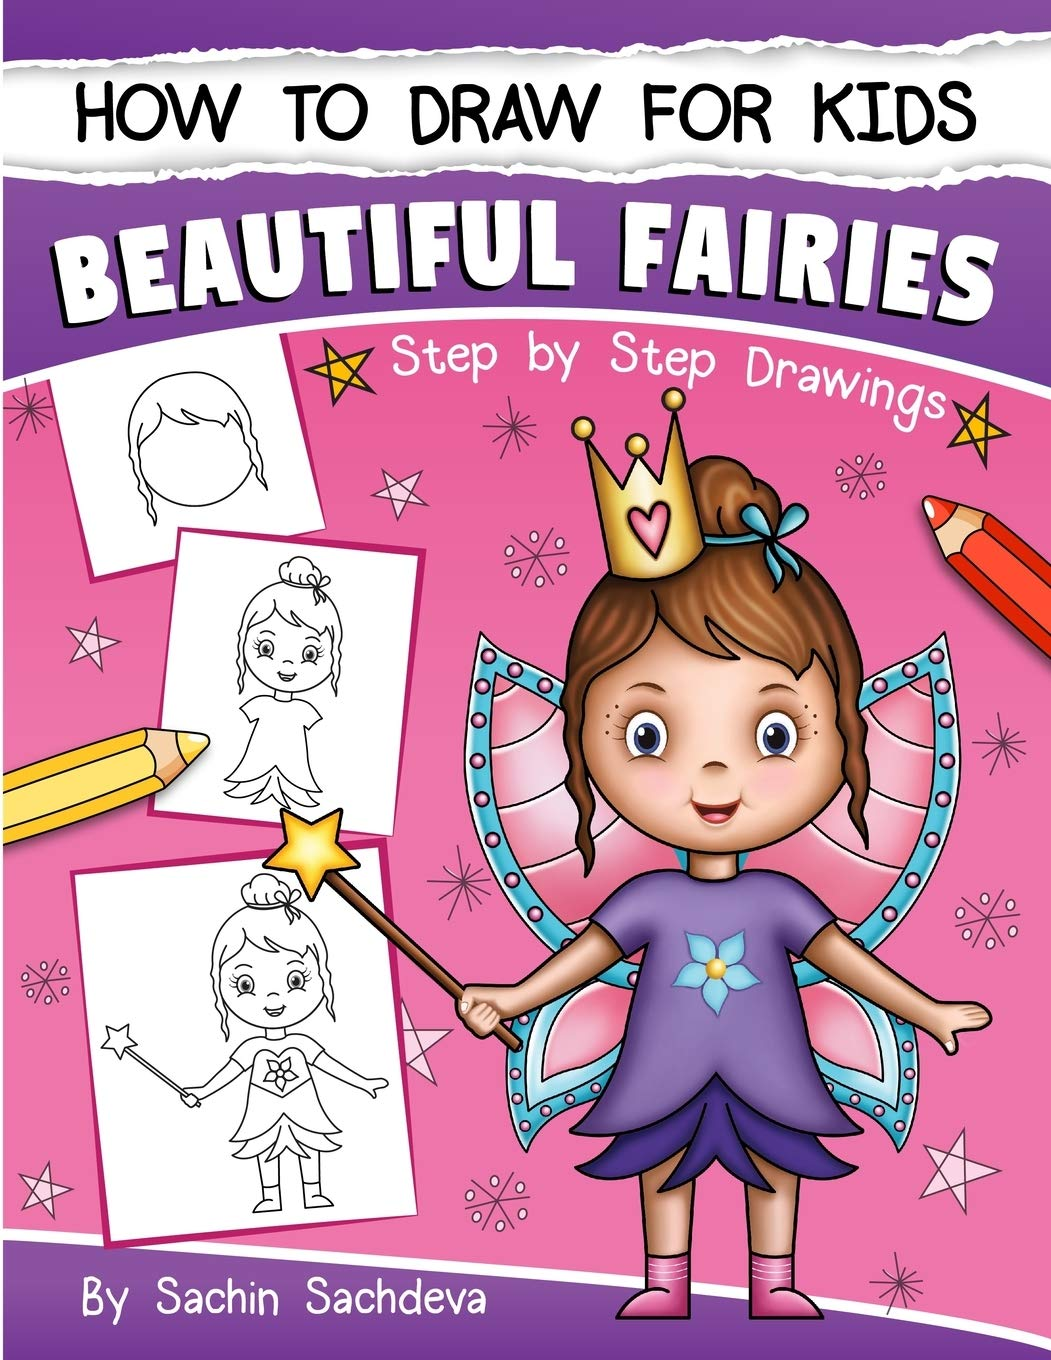 How To Draw For Kids A Girl S Guide To Drawing Beautiful Fairies